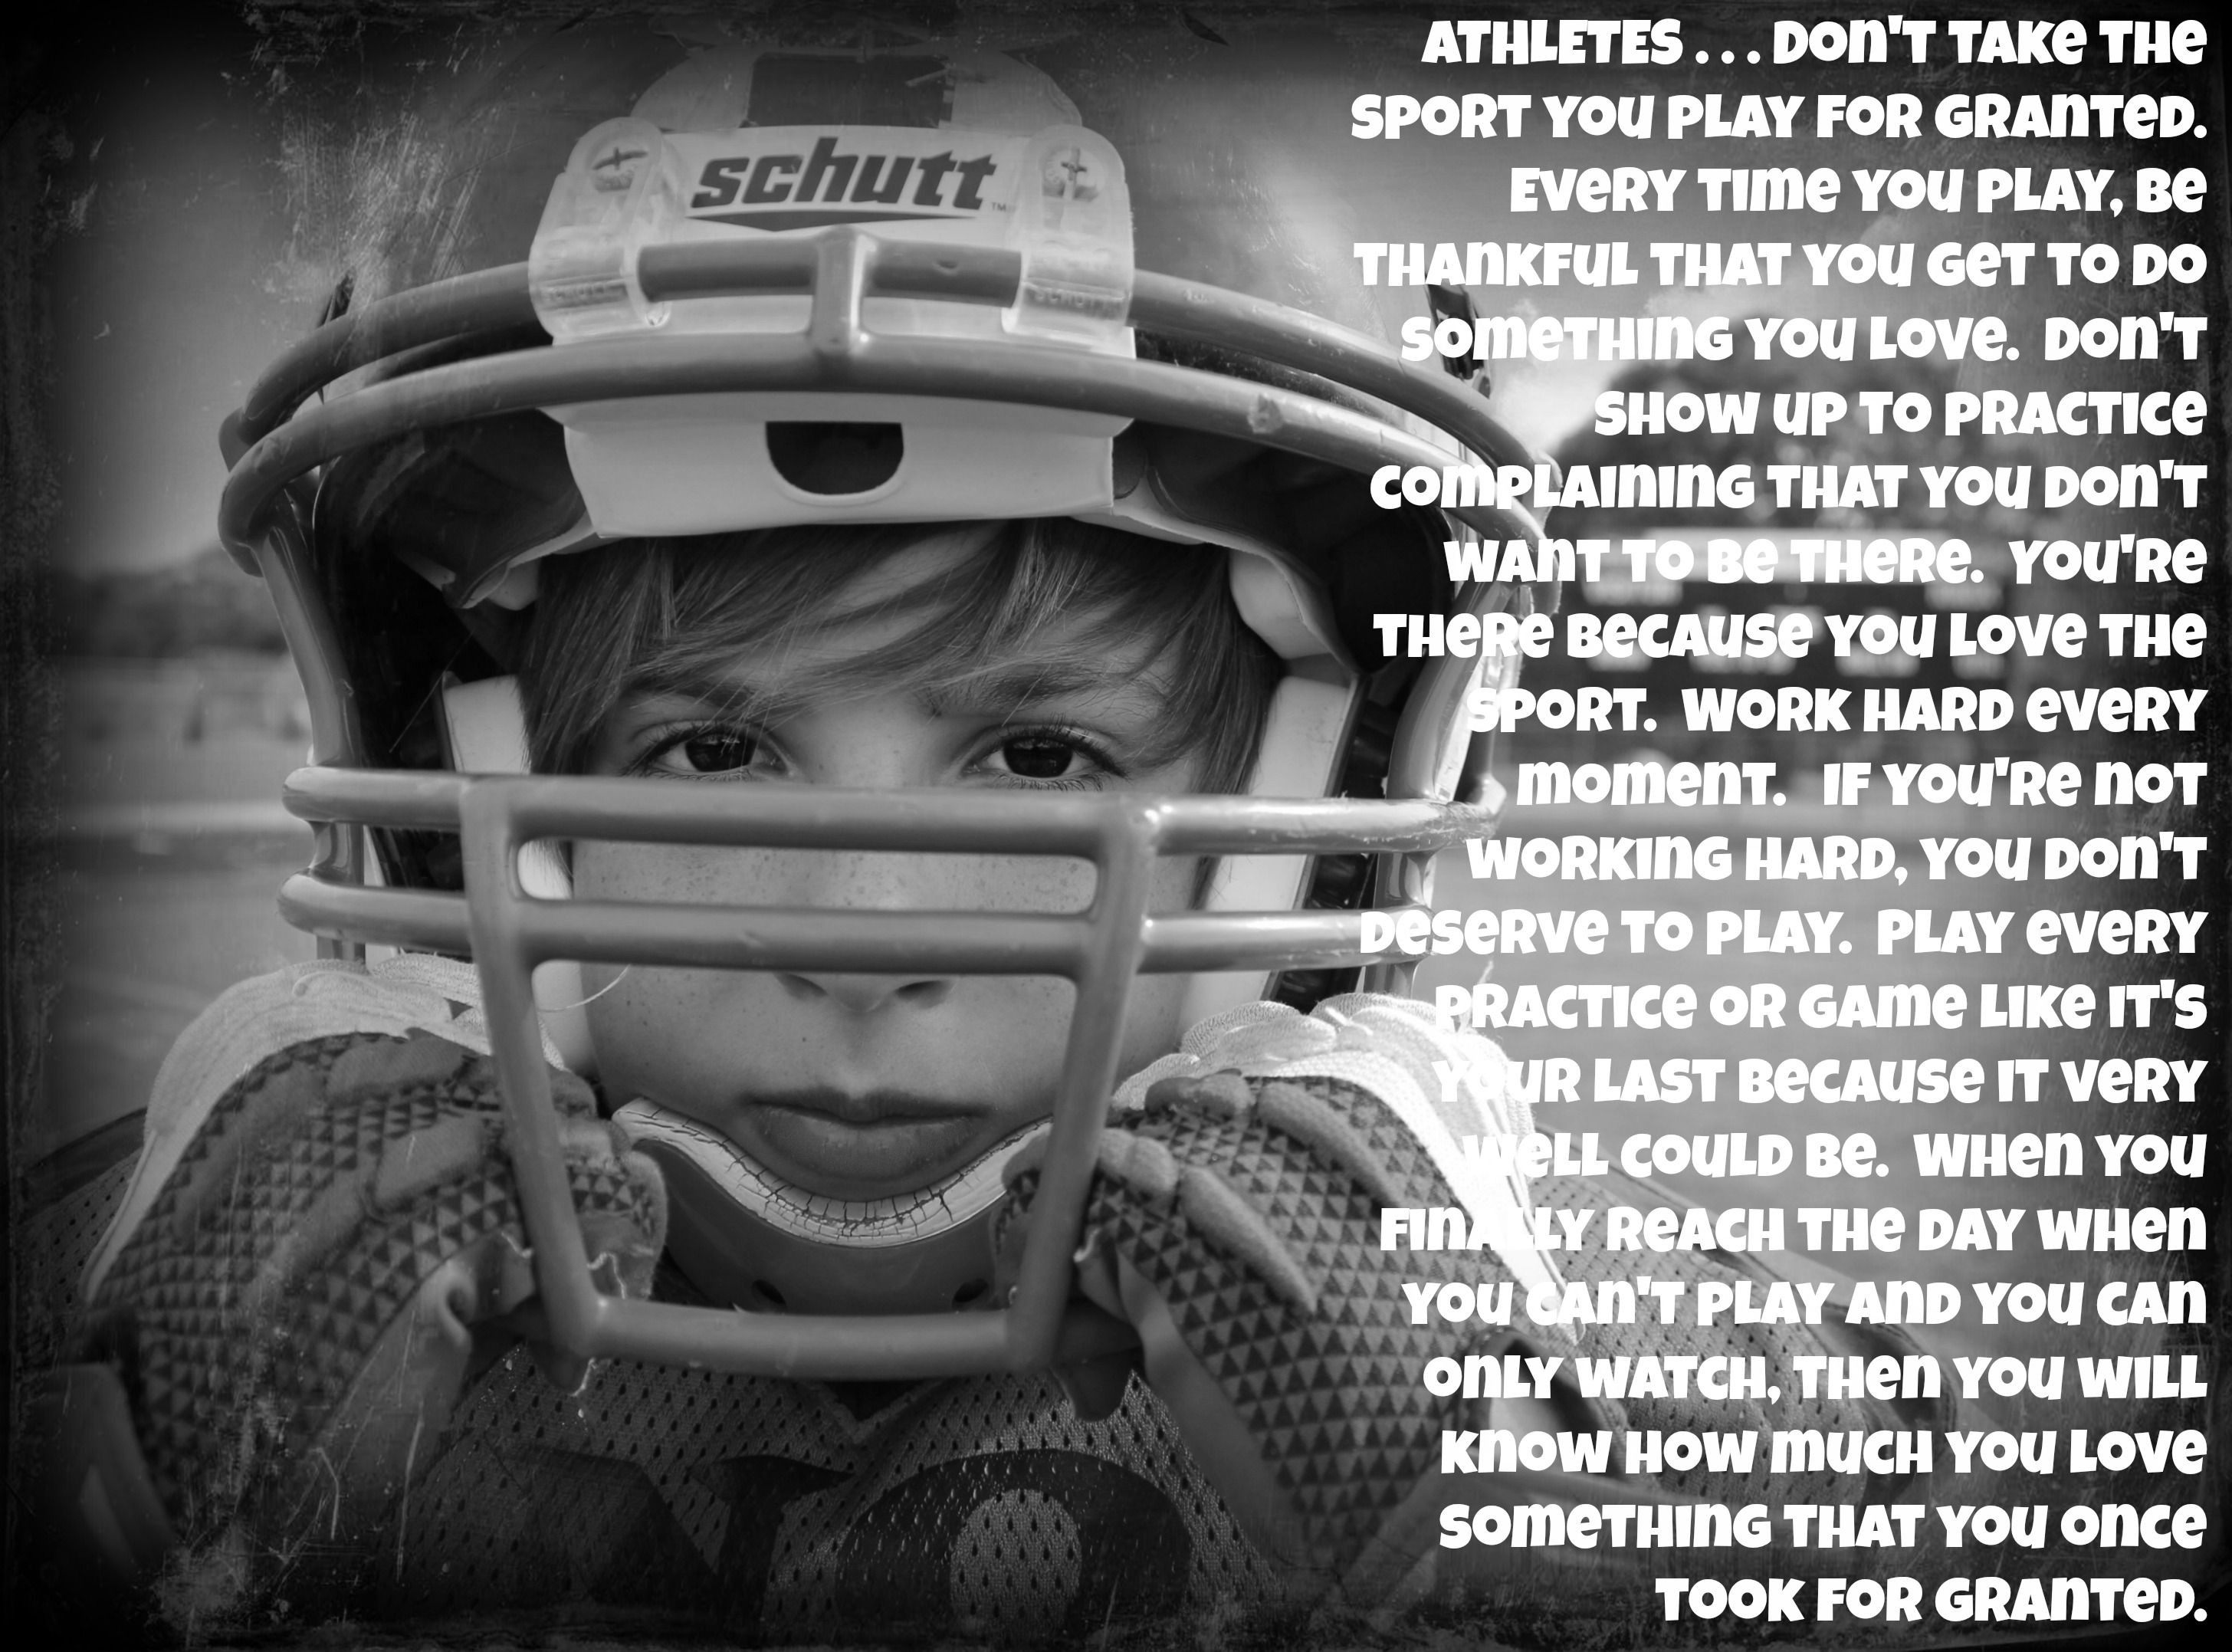 ATHLETES . . .one day we all look back and miss the